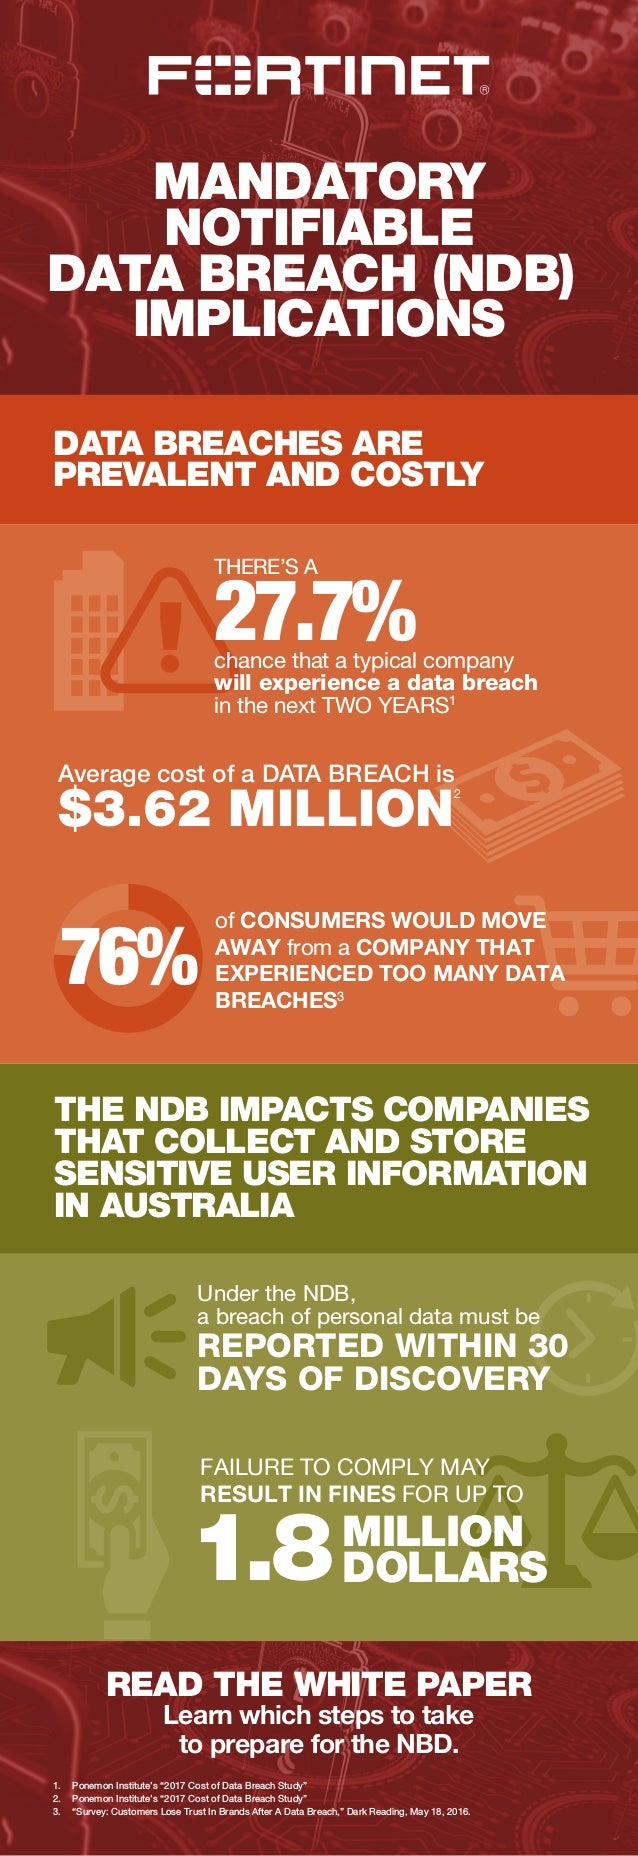 MANDATORY NOTIFIABLE DATA BREACH (NDB) IMPLICATIONS DATA BREACHES ARE PREVALENT AND COSTLY THE NDB IMPACTS COMPANIES THAT ...